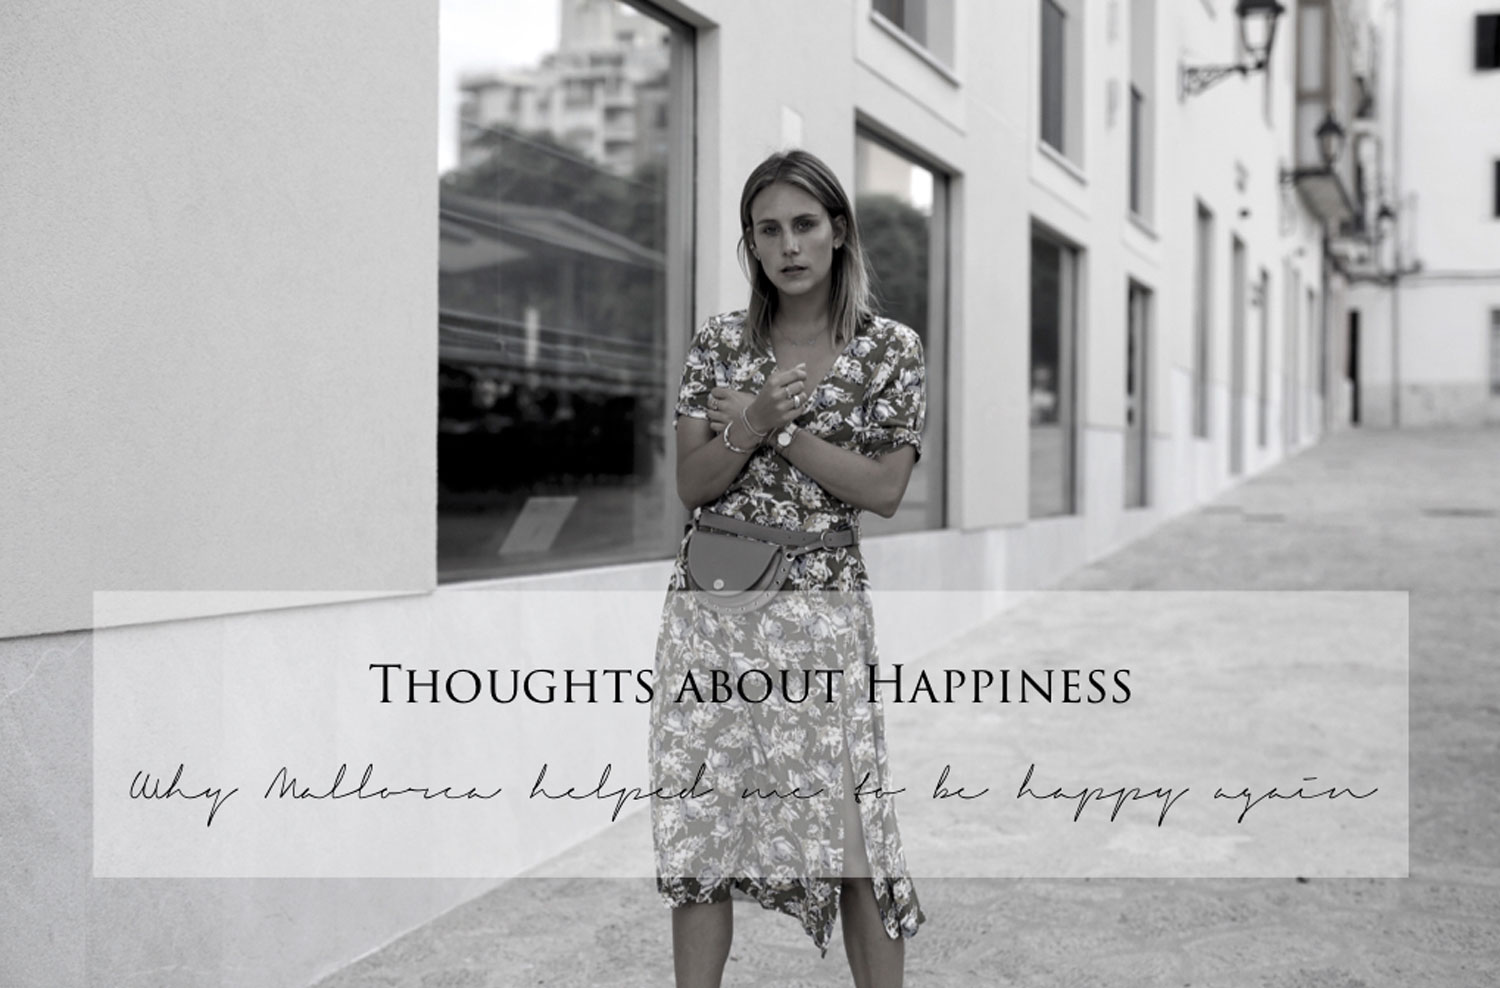 Mallorca-Thoughts-About-Happiness